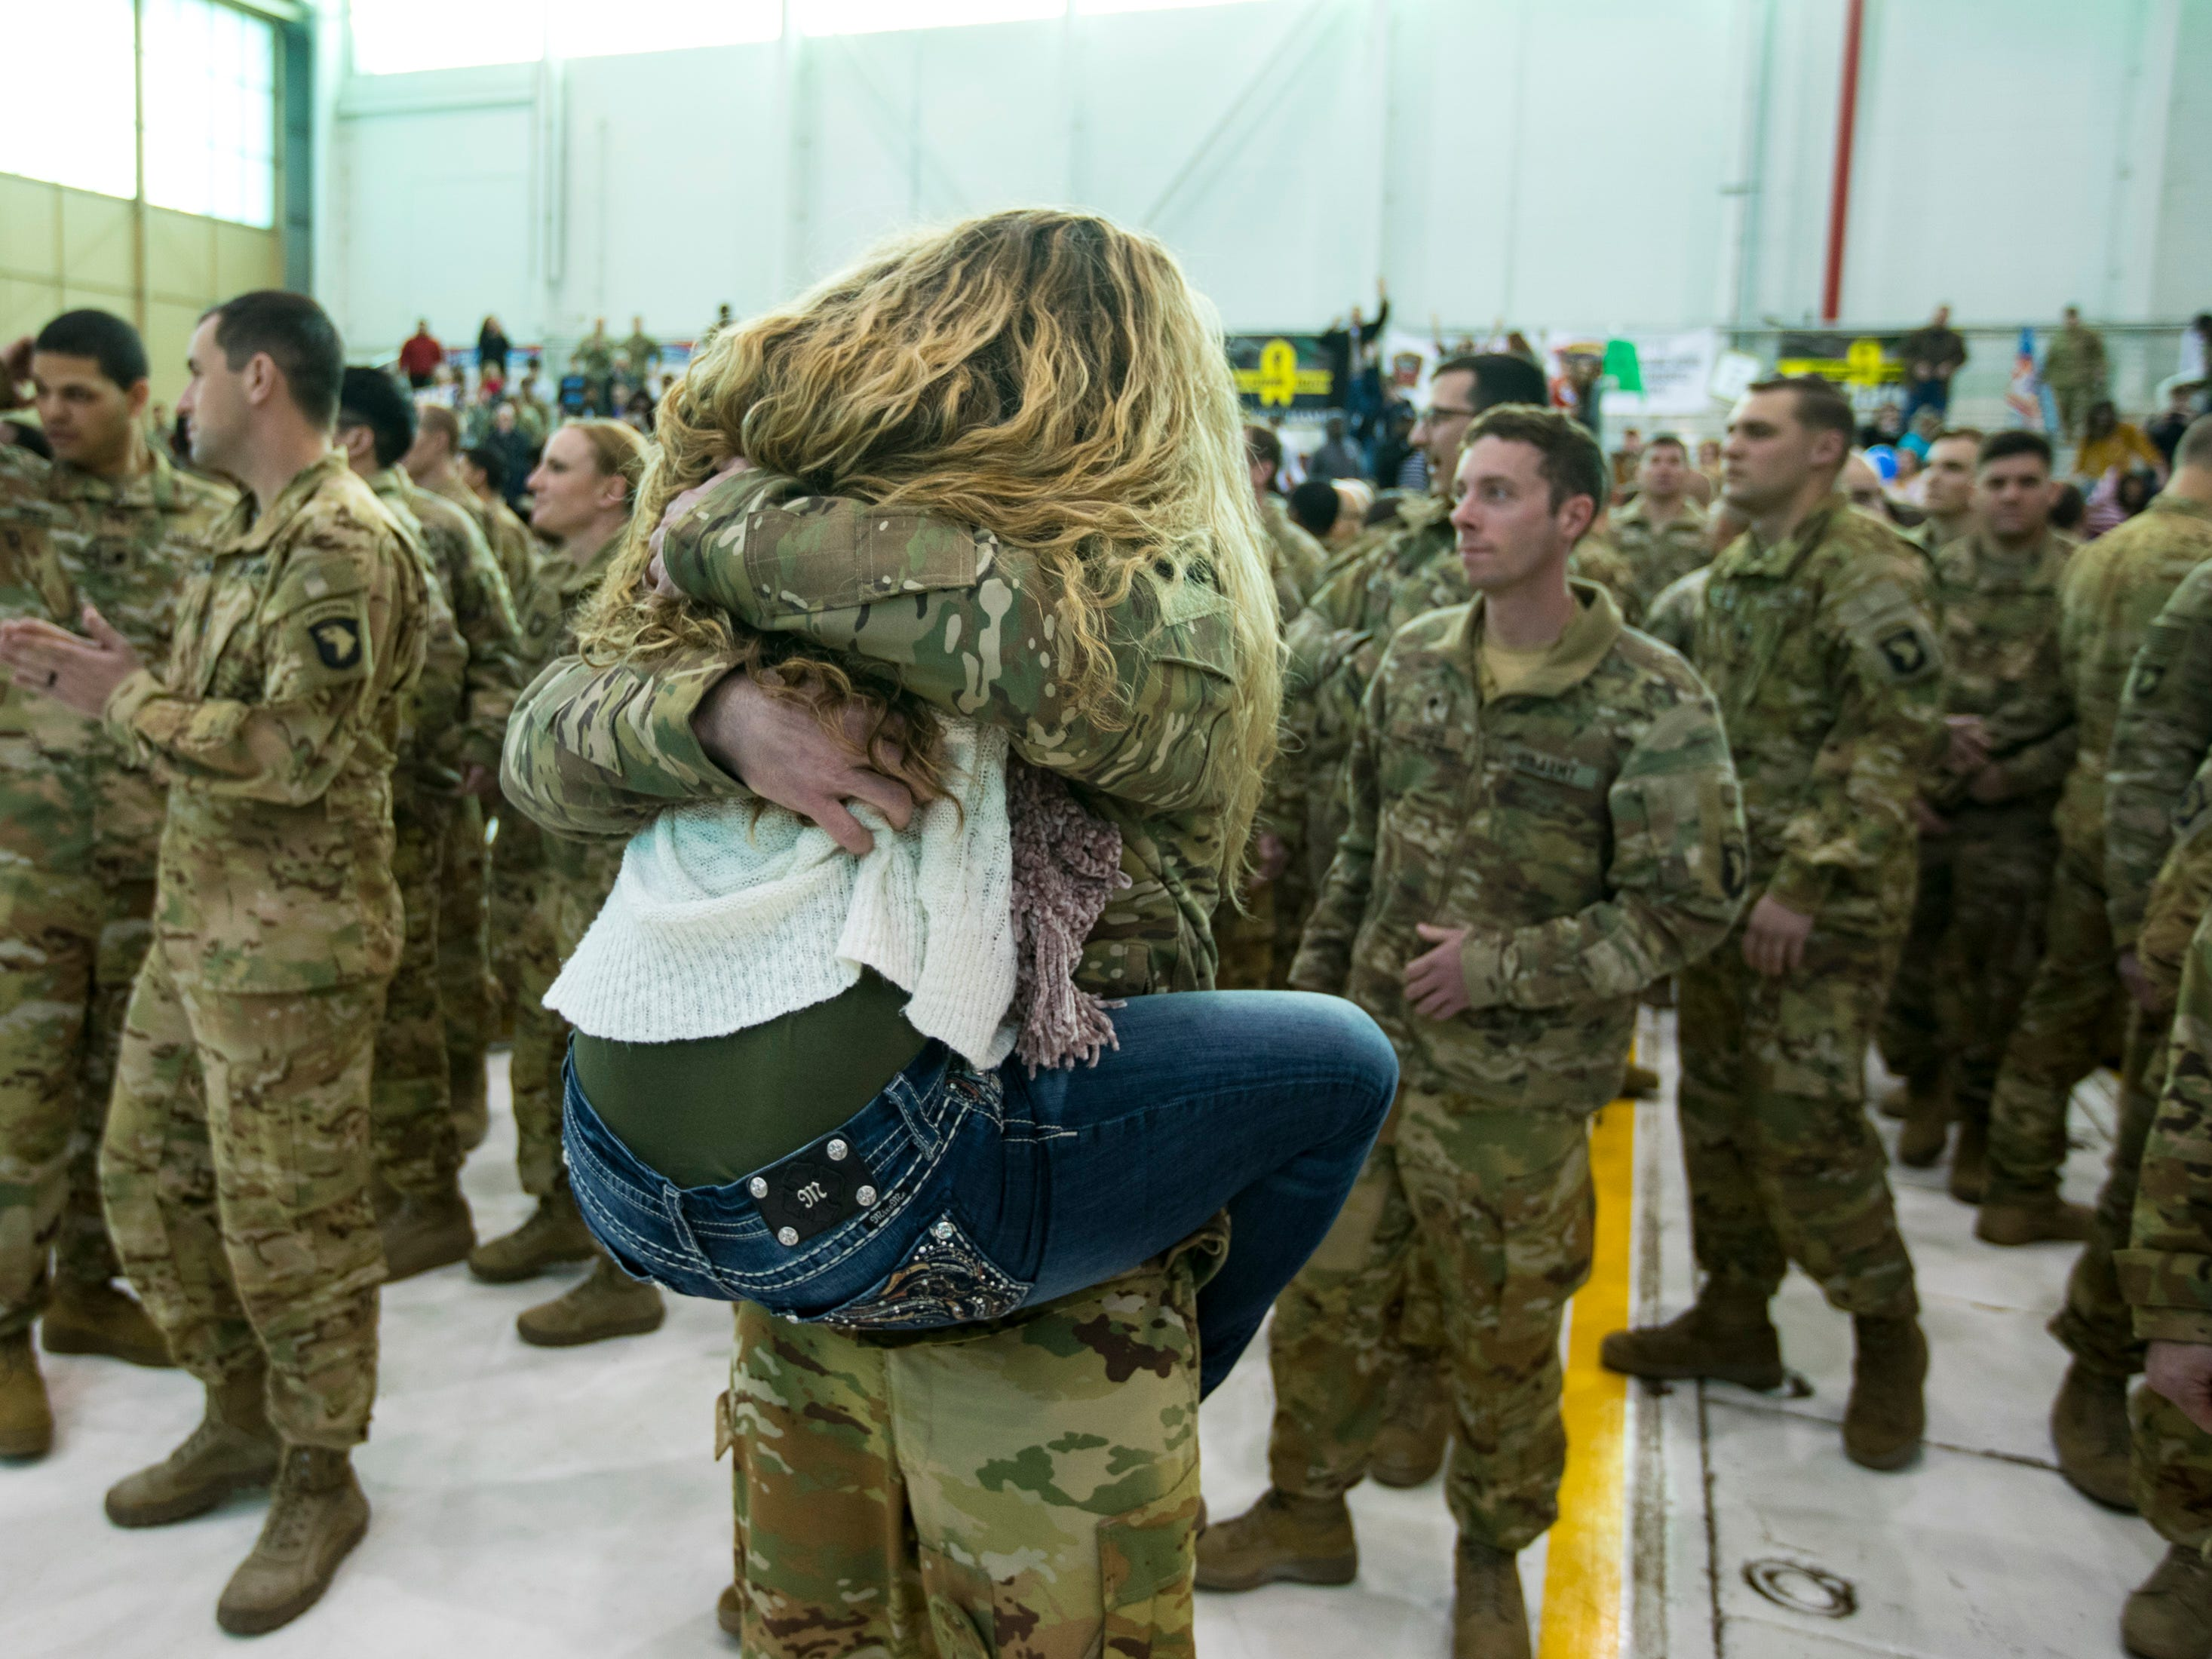 A woman jumps on a soldier during a homecoming ceremony for members of the 101st Combat Aviation Brigade and 101st Sustainment Brigade at Fort Campbell in Clarksville on Thursday, Feb. 21, 2019. The soldiers were returning from a nine-month deployment to Afghanistan.